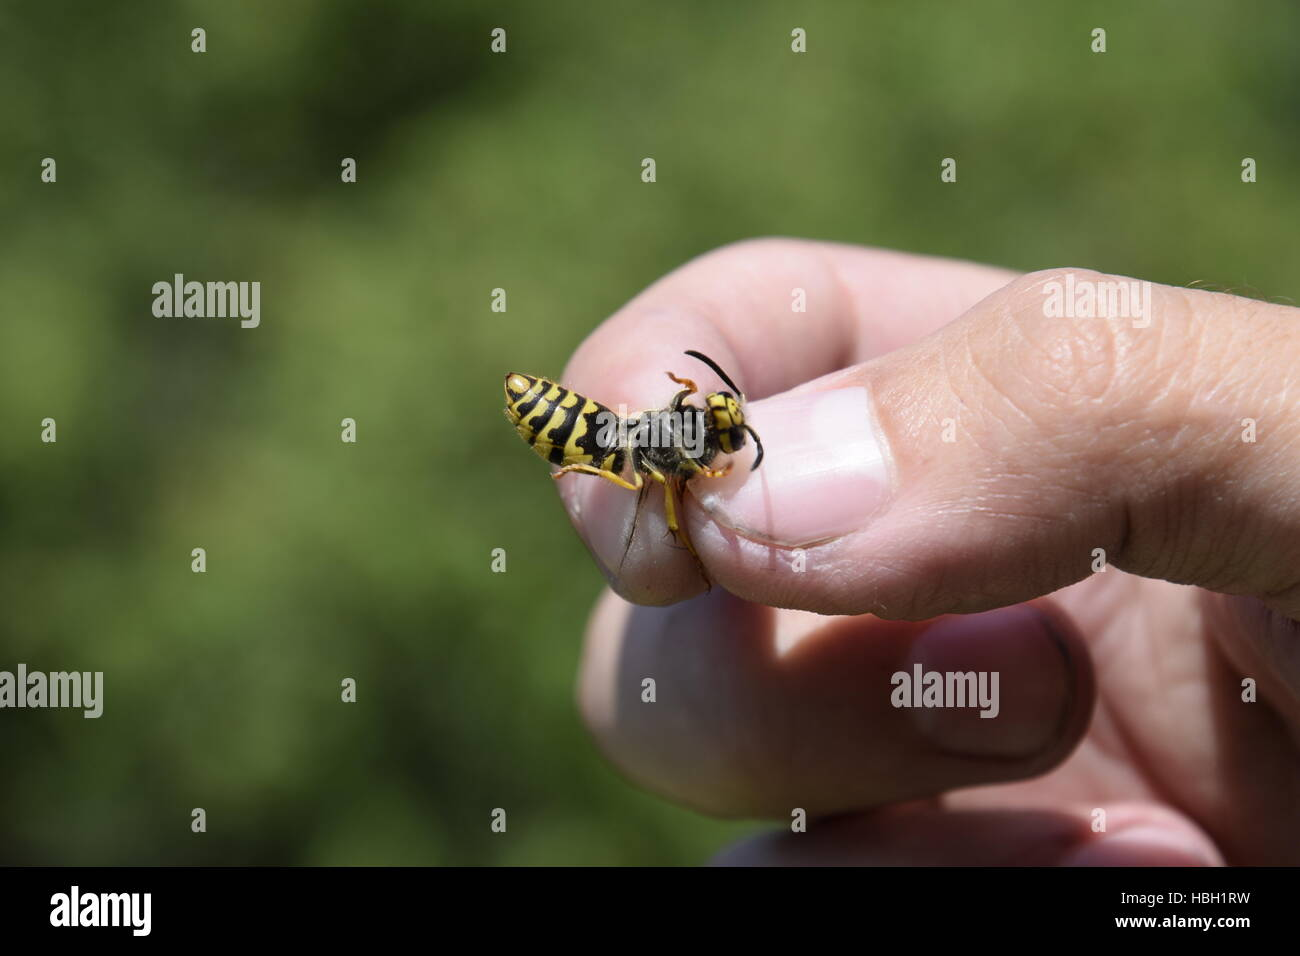 Common wasp on pinched fingers - Stock Image